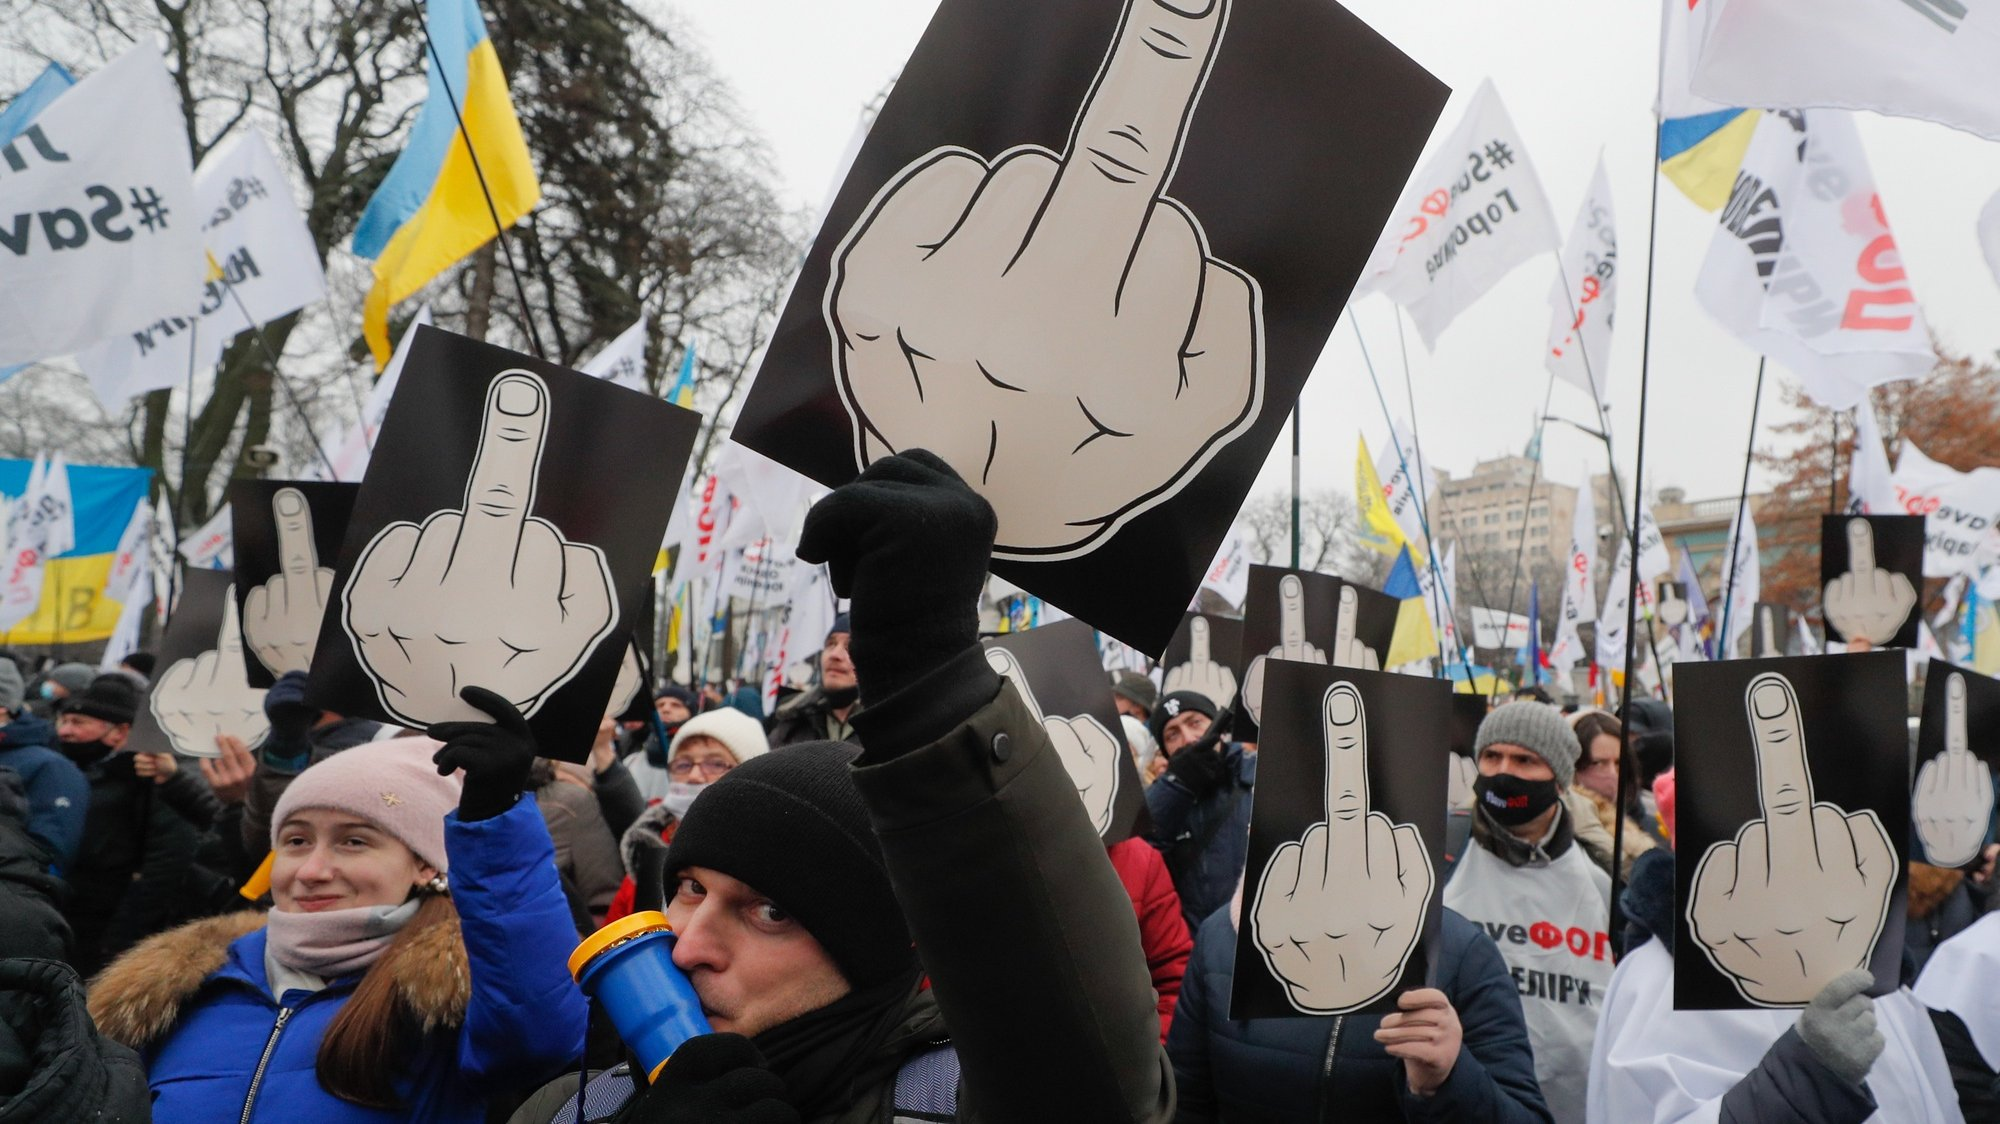 epa08885117 Ukrainian small businessmen attend a rally with the slogan Save FOP (individual-entrepreneurs) in front of Parliament building in Kiev, Ukraine, 15 December 2020. Small businessmen protested against strict quarantine announced by the Government between 08 and 24 January 2021 and demand the abrogation of the amendments to a law about the simplified tax system, which will considerably complicate their ability to manage their businesses, raise their prices for clients and increase the possibility of unjustified fines, according to local media reports.  EPA/SERGEY DOLZHENKO